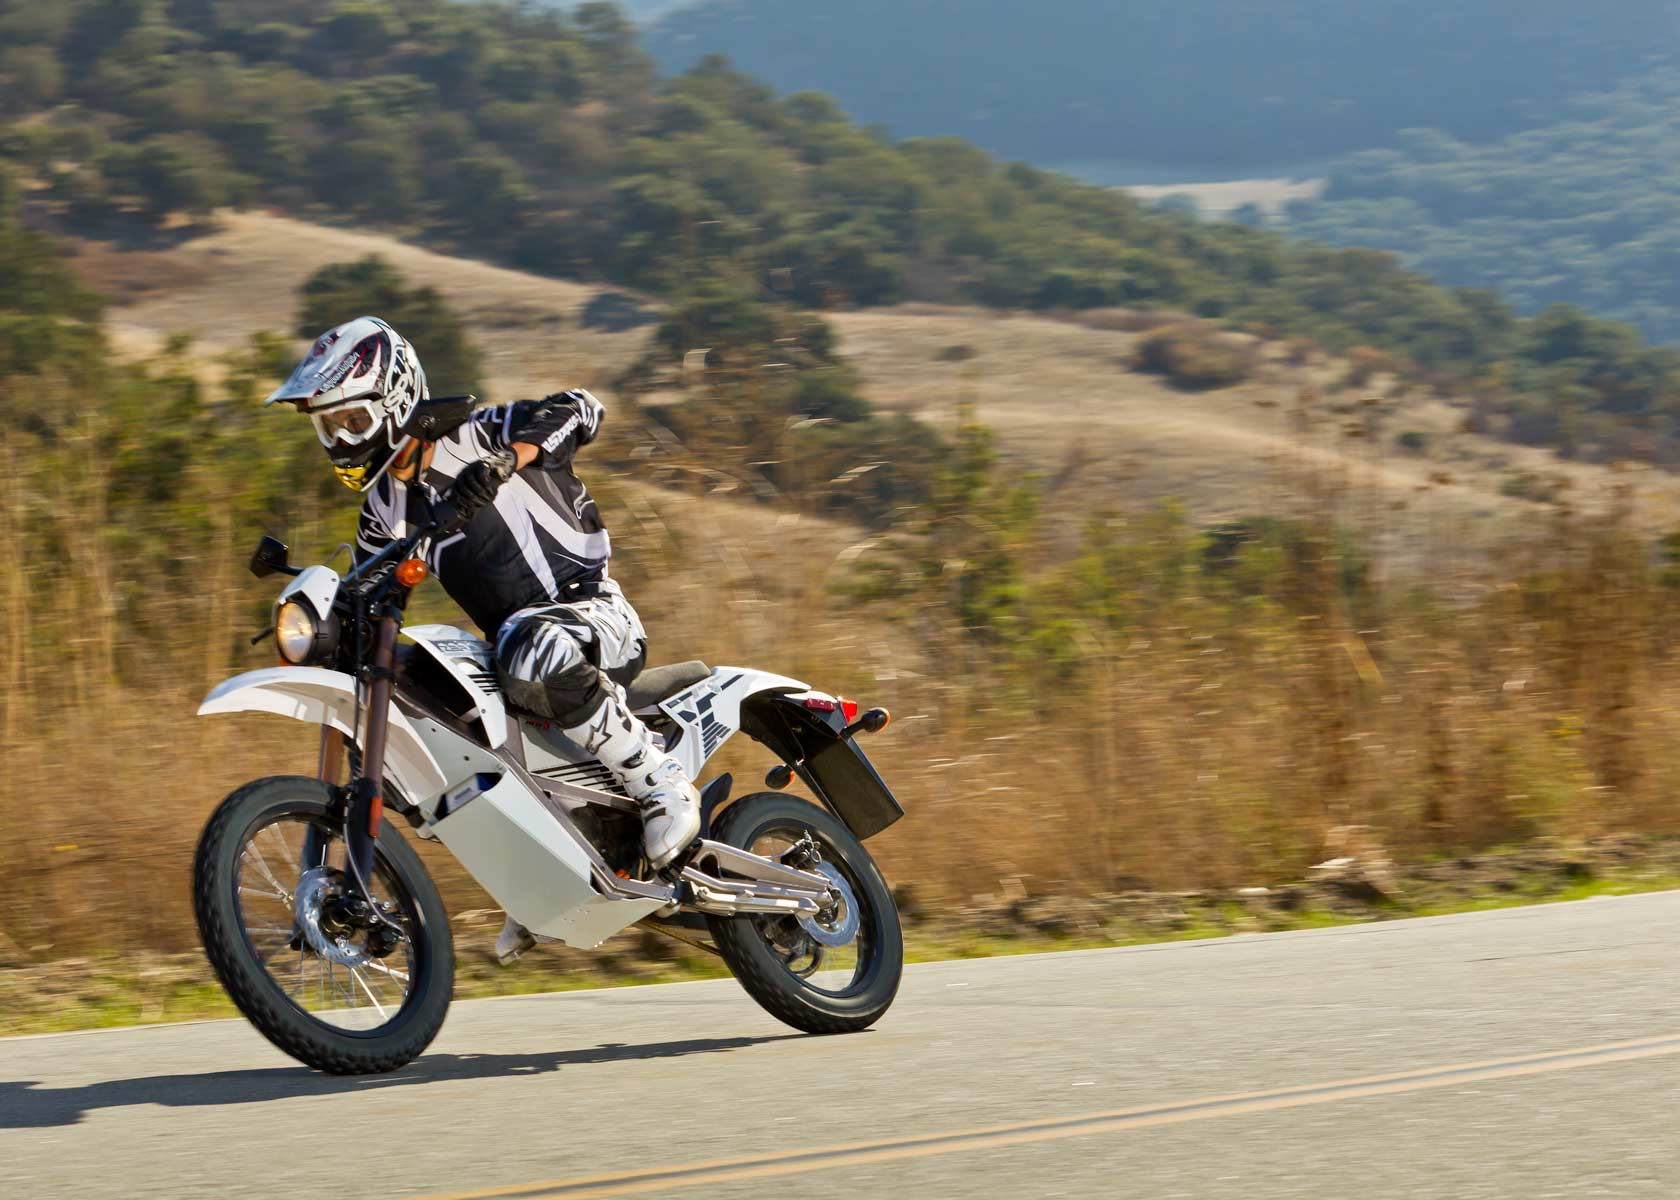 2012 Zero X Electric Motorcycle: Cruising